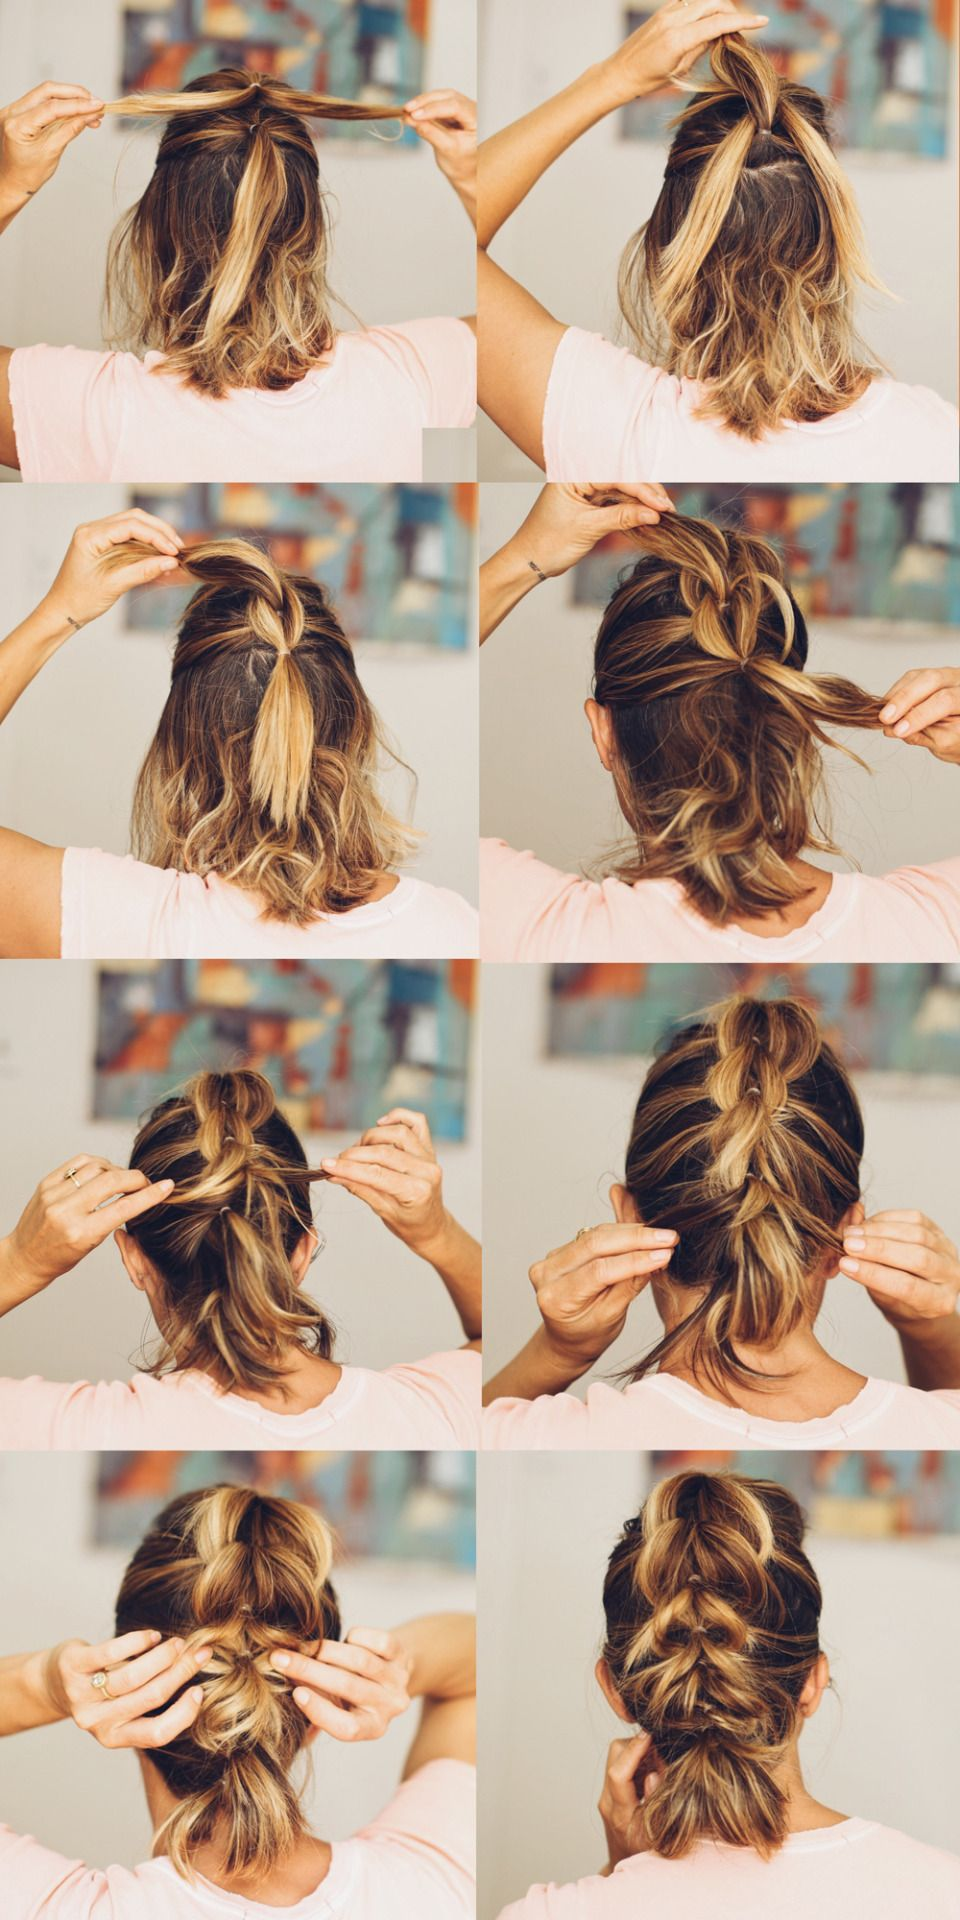 Lob Hairstyle  If You Have Shorter Length Hair, Or Kind Of Suck At Braiding